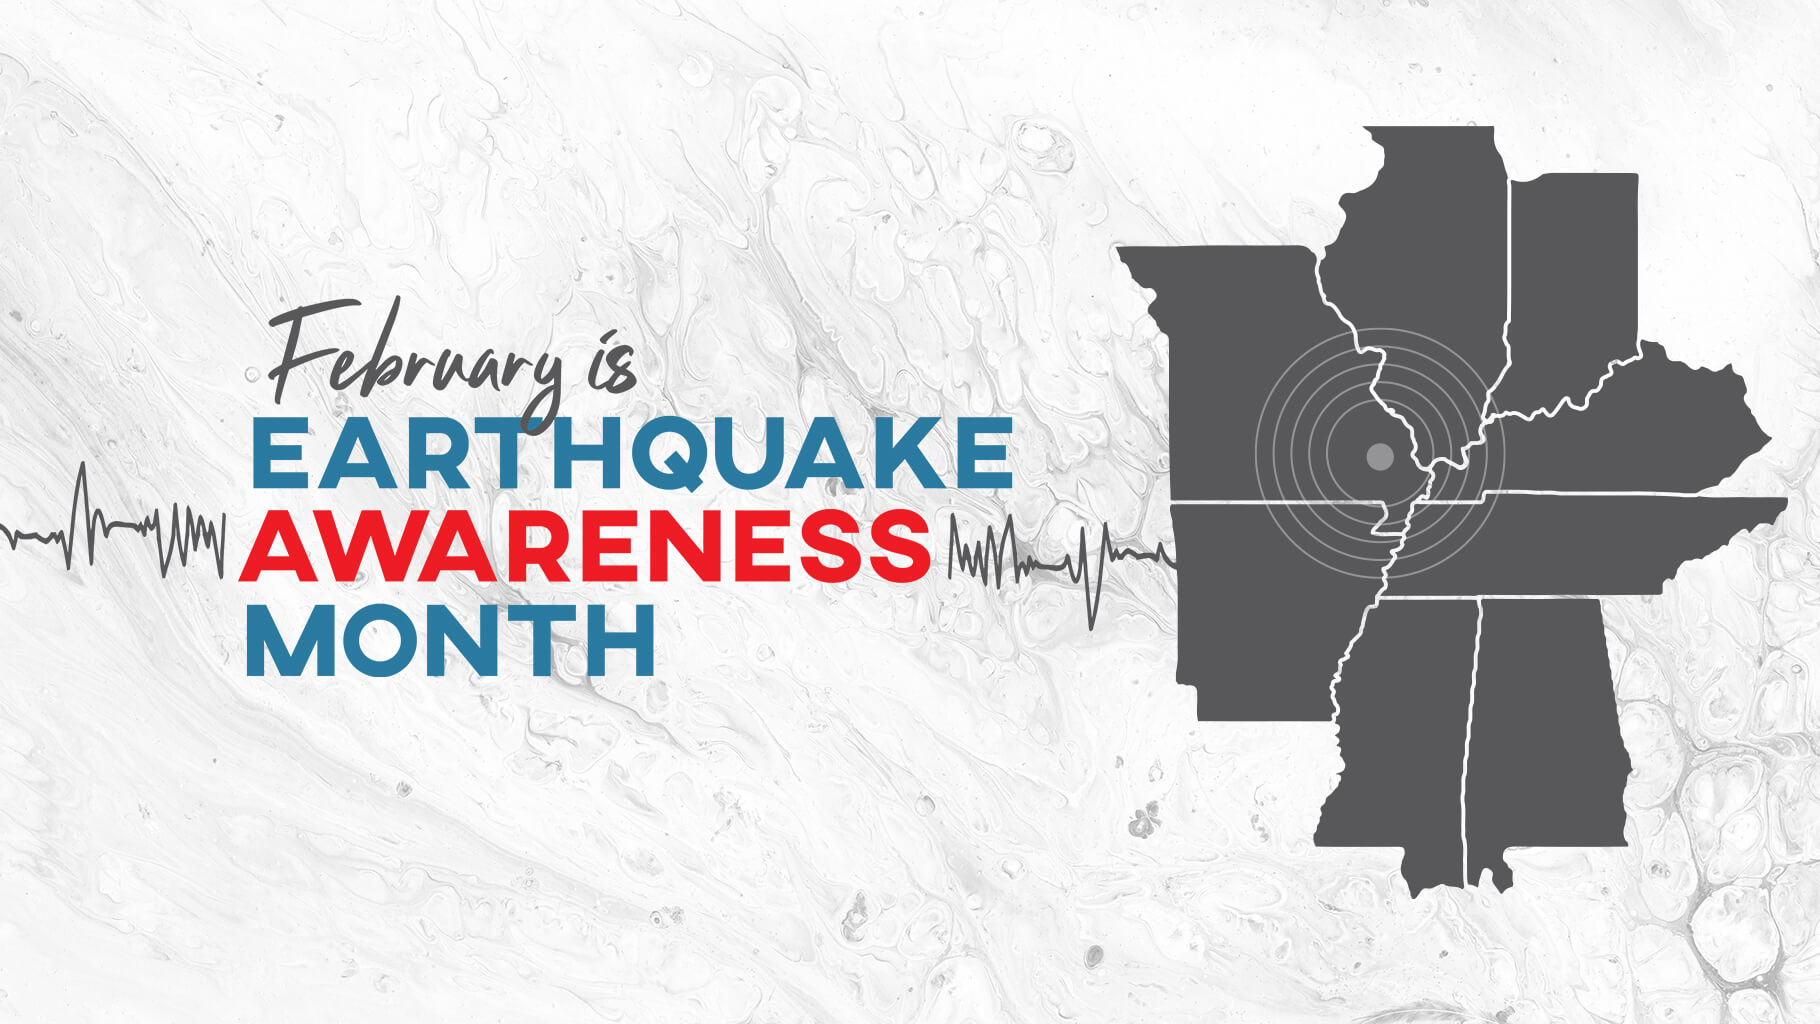 February is Earthquake Awareness Month